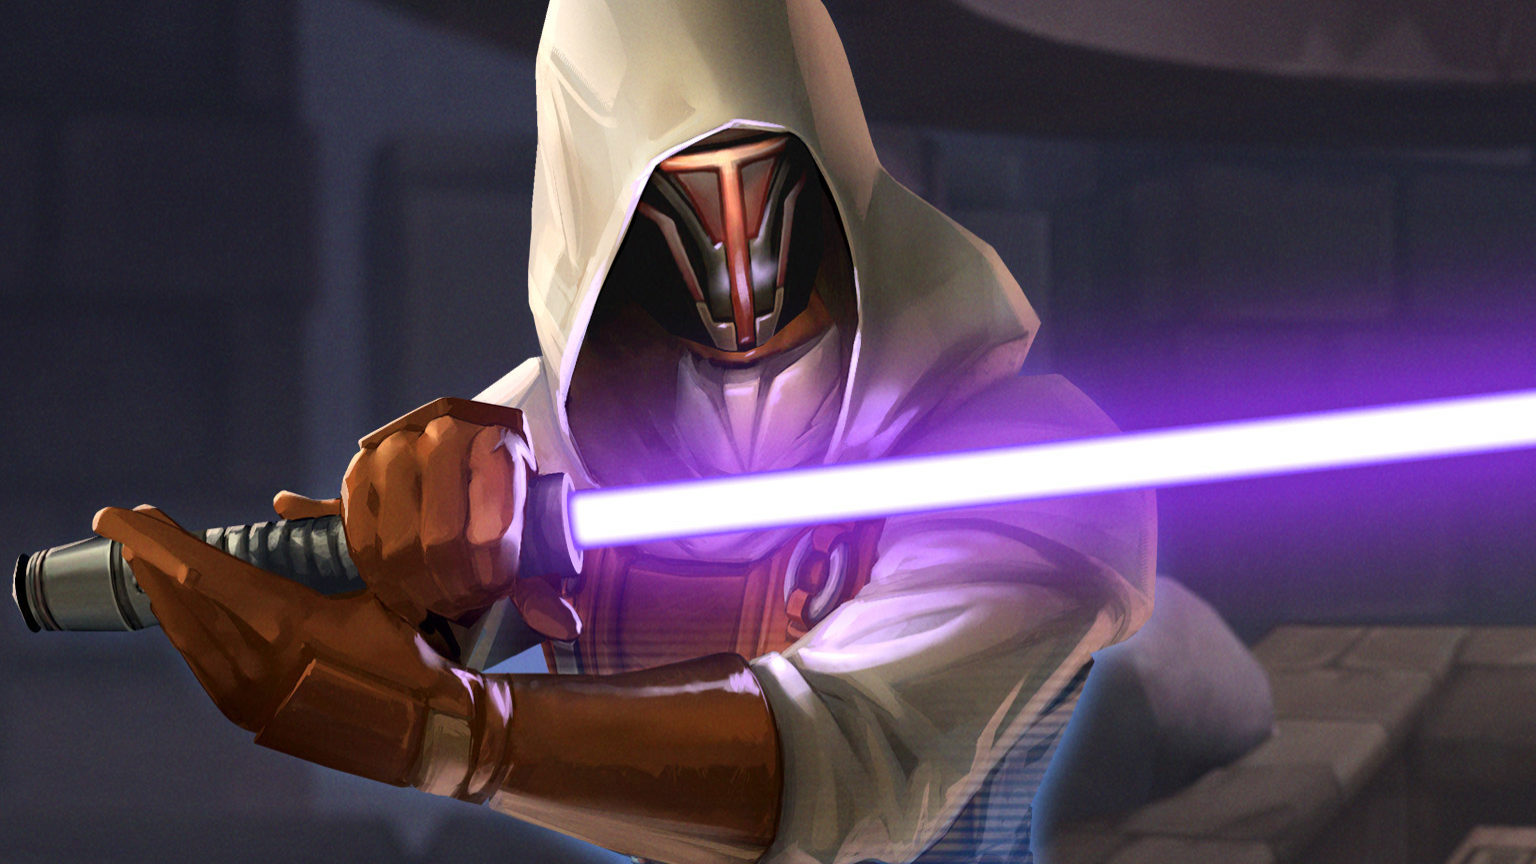 Jedi Knight Revan in Galaxy of Heroes.